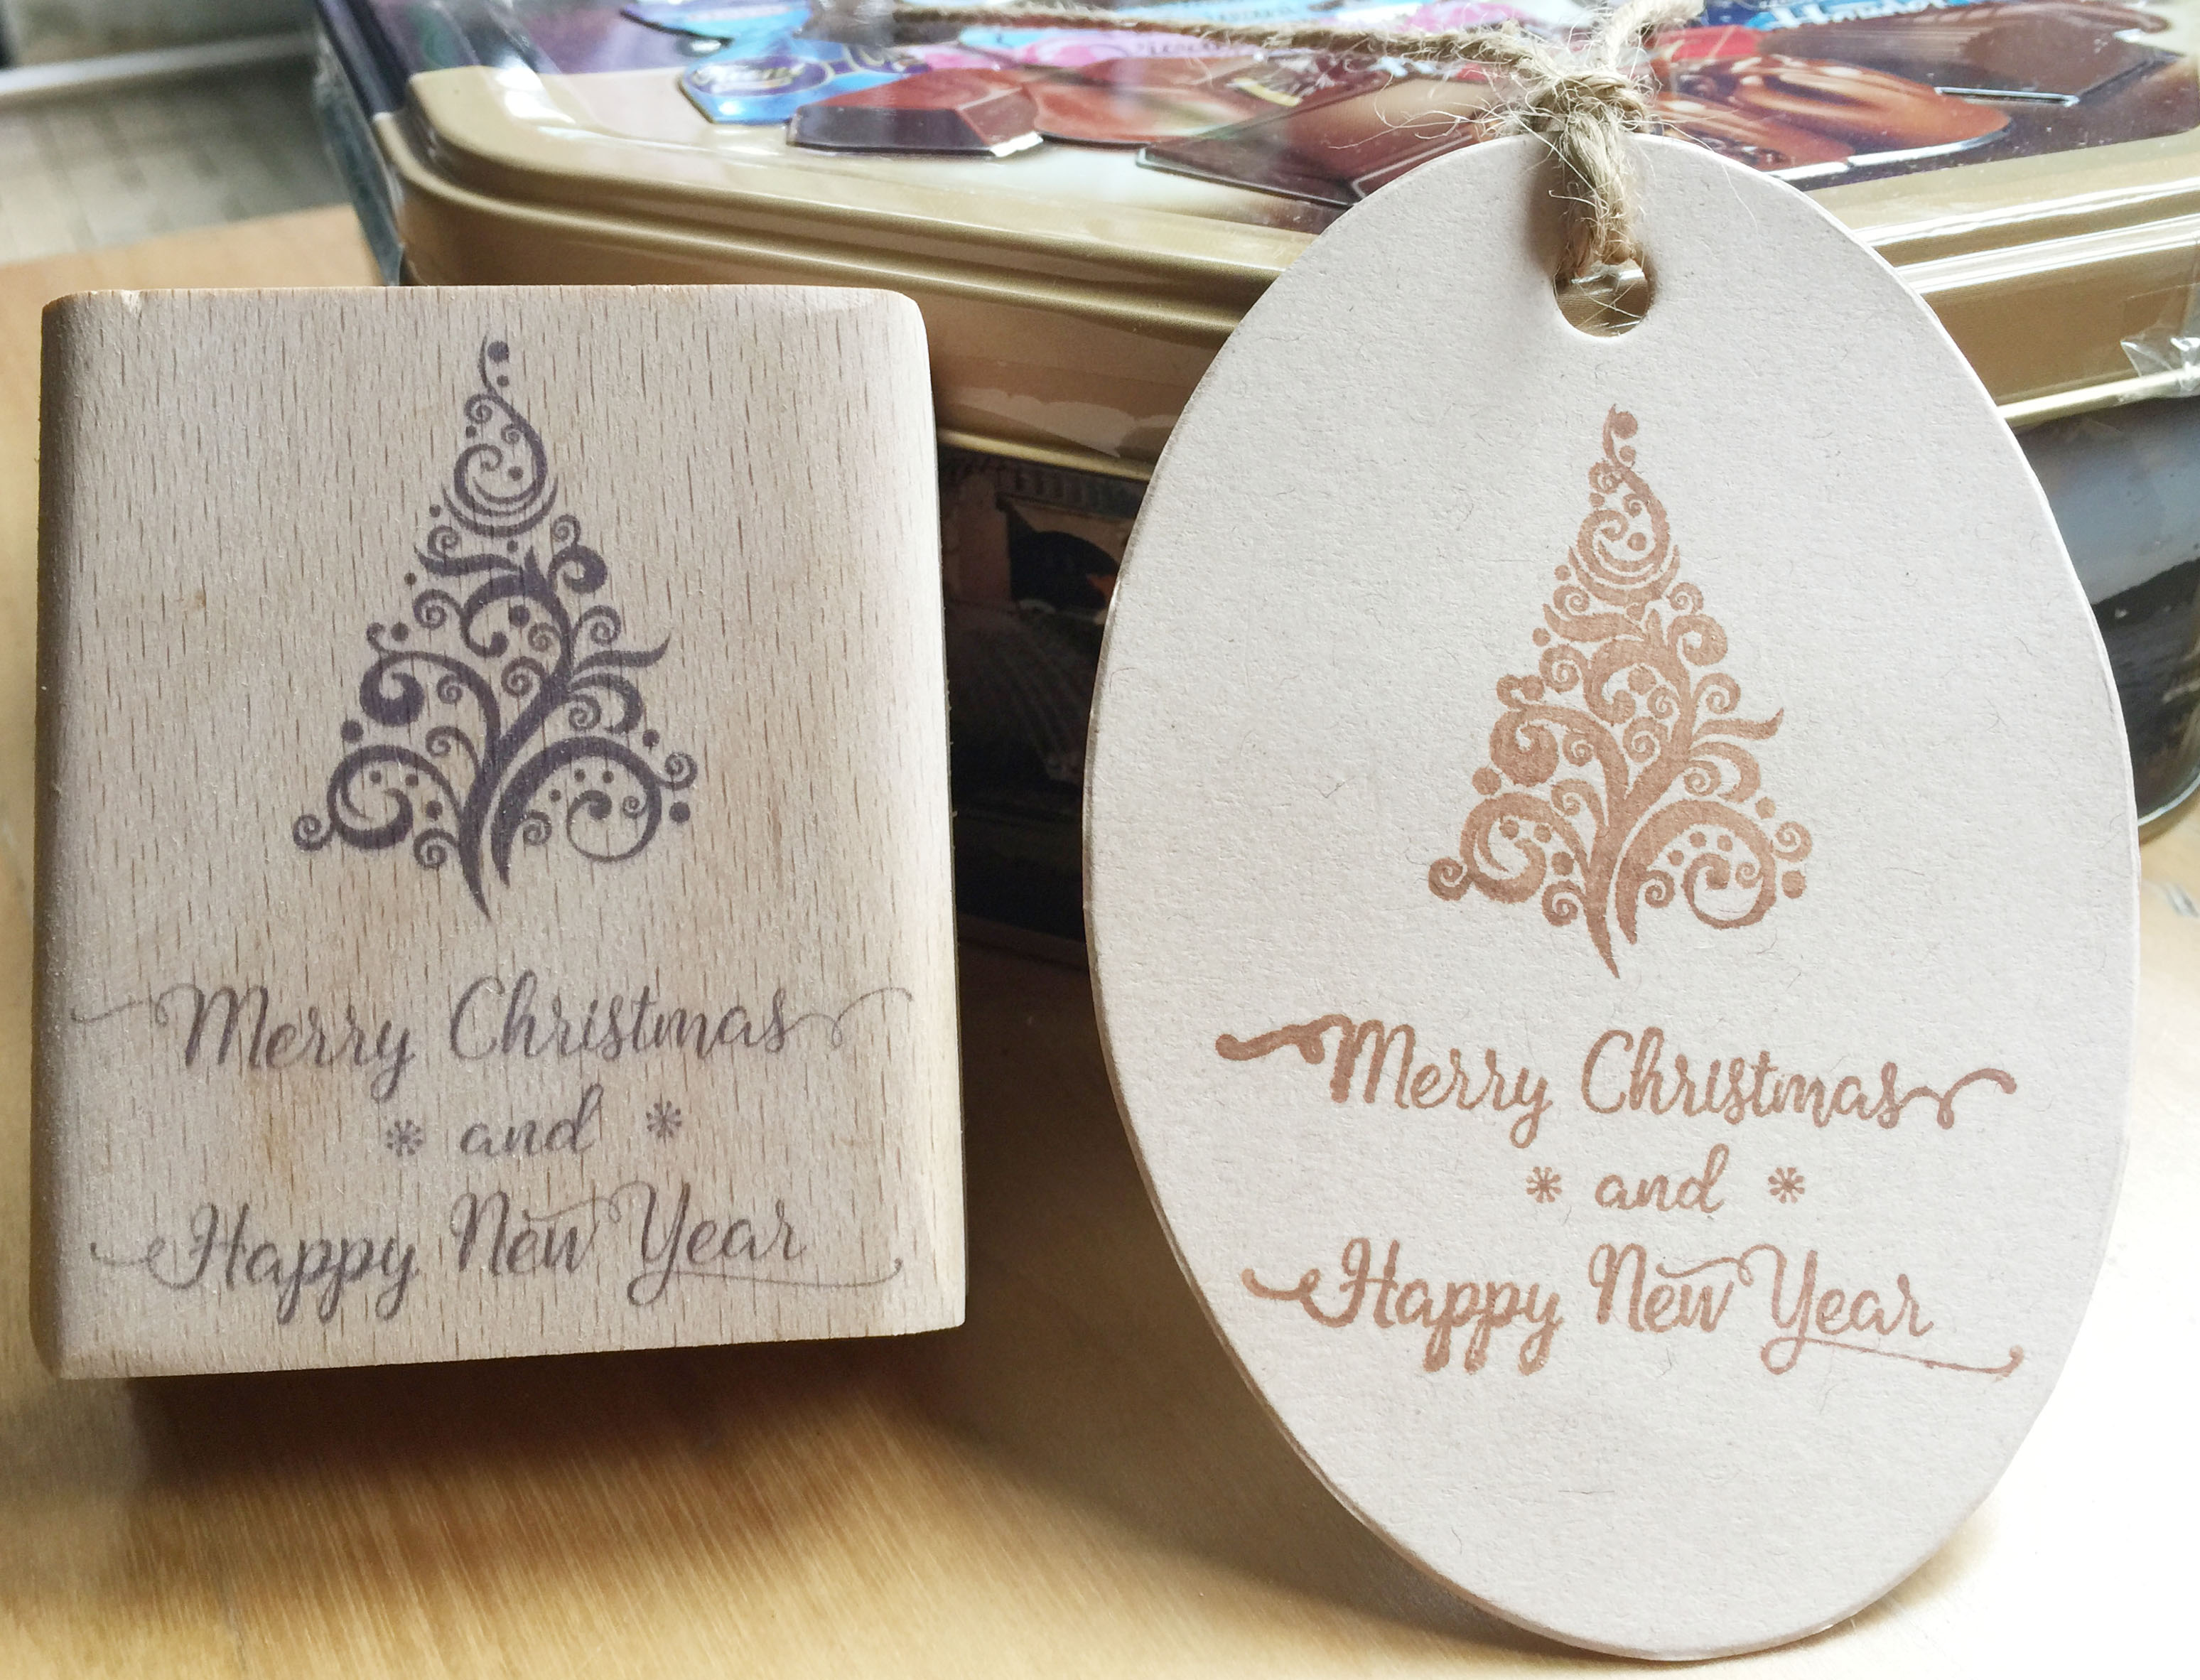 handmade merry christmas happy new year 7*6cm wooden rubber stamps for scrapbooking carimbo timbri christmas stamps handmade vintage towel 7 4cm tinta sellos craft wooden rubber stamps for scrapbooking carimbo timbri stempel wood silicone stamp